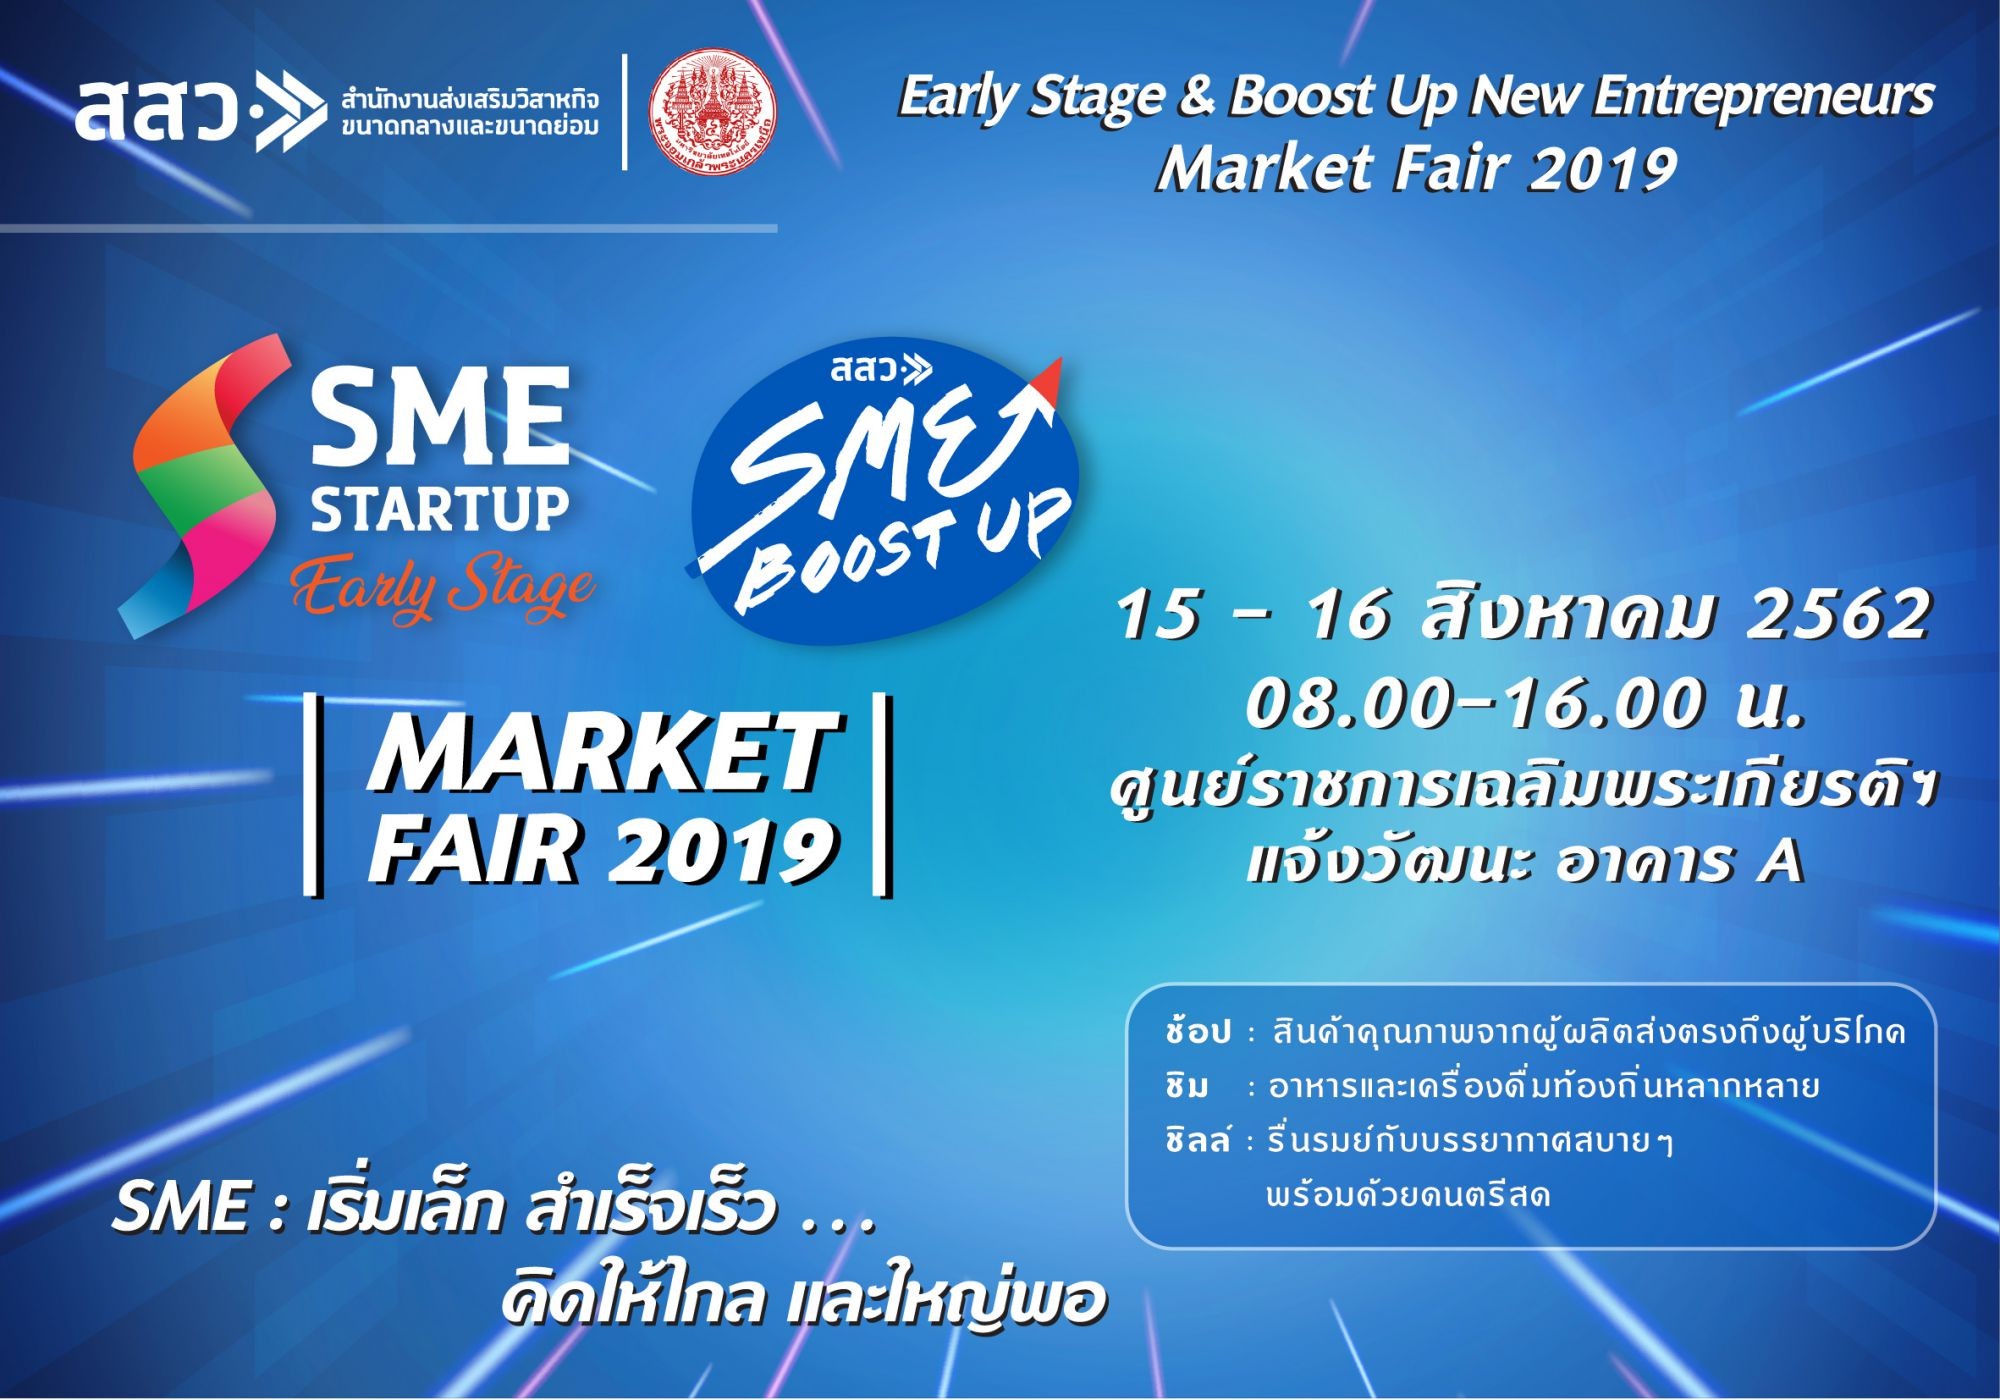 SME STARTUP EARLY STAGE MARKET FAIR 2019